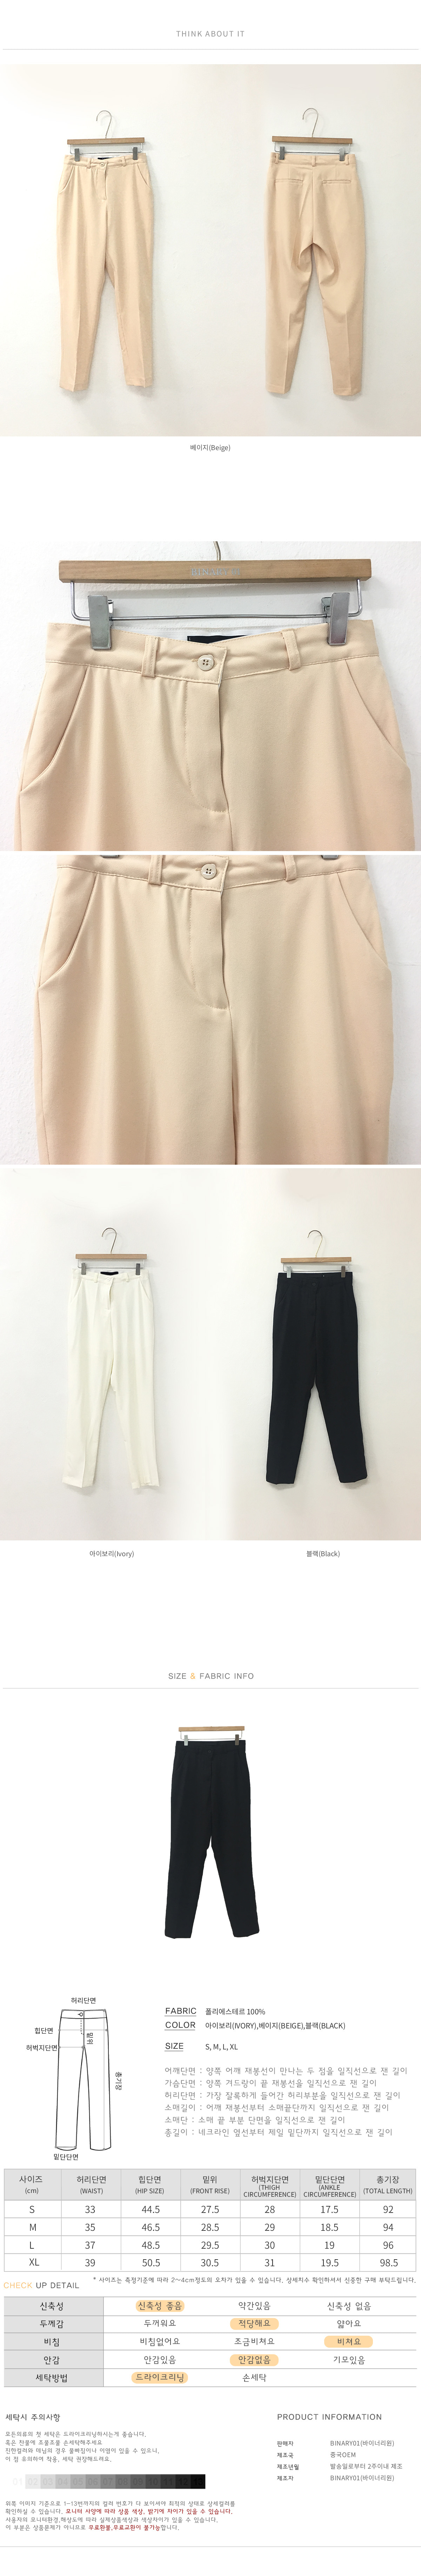 Cover Slim Date Slacks Pants